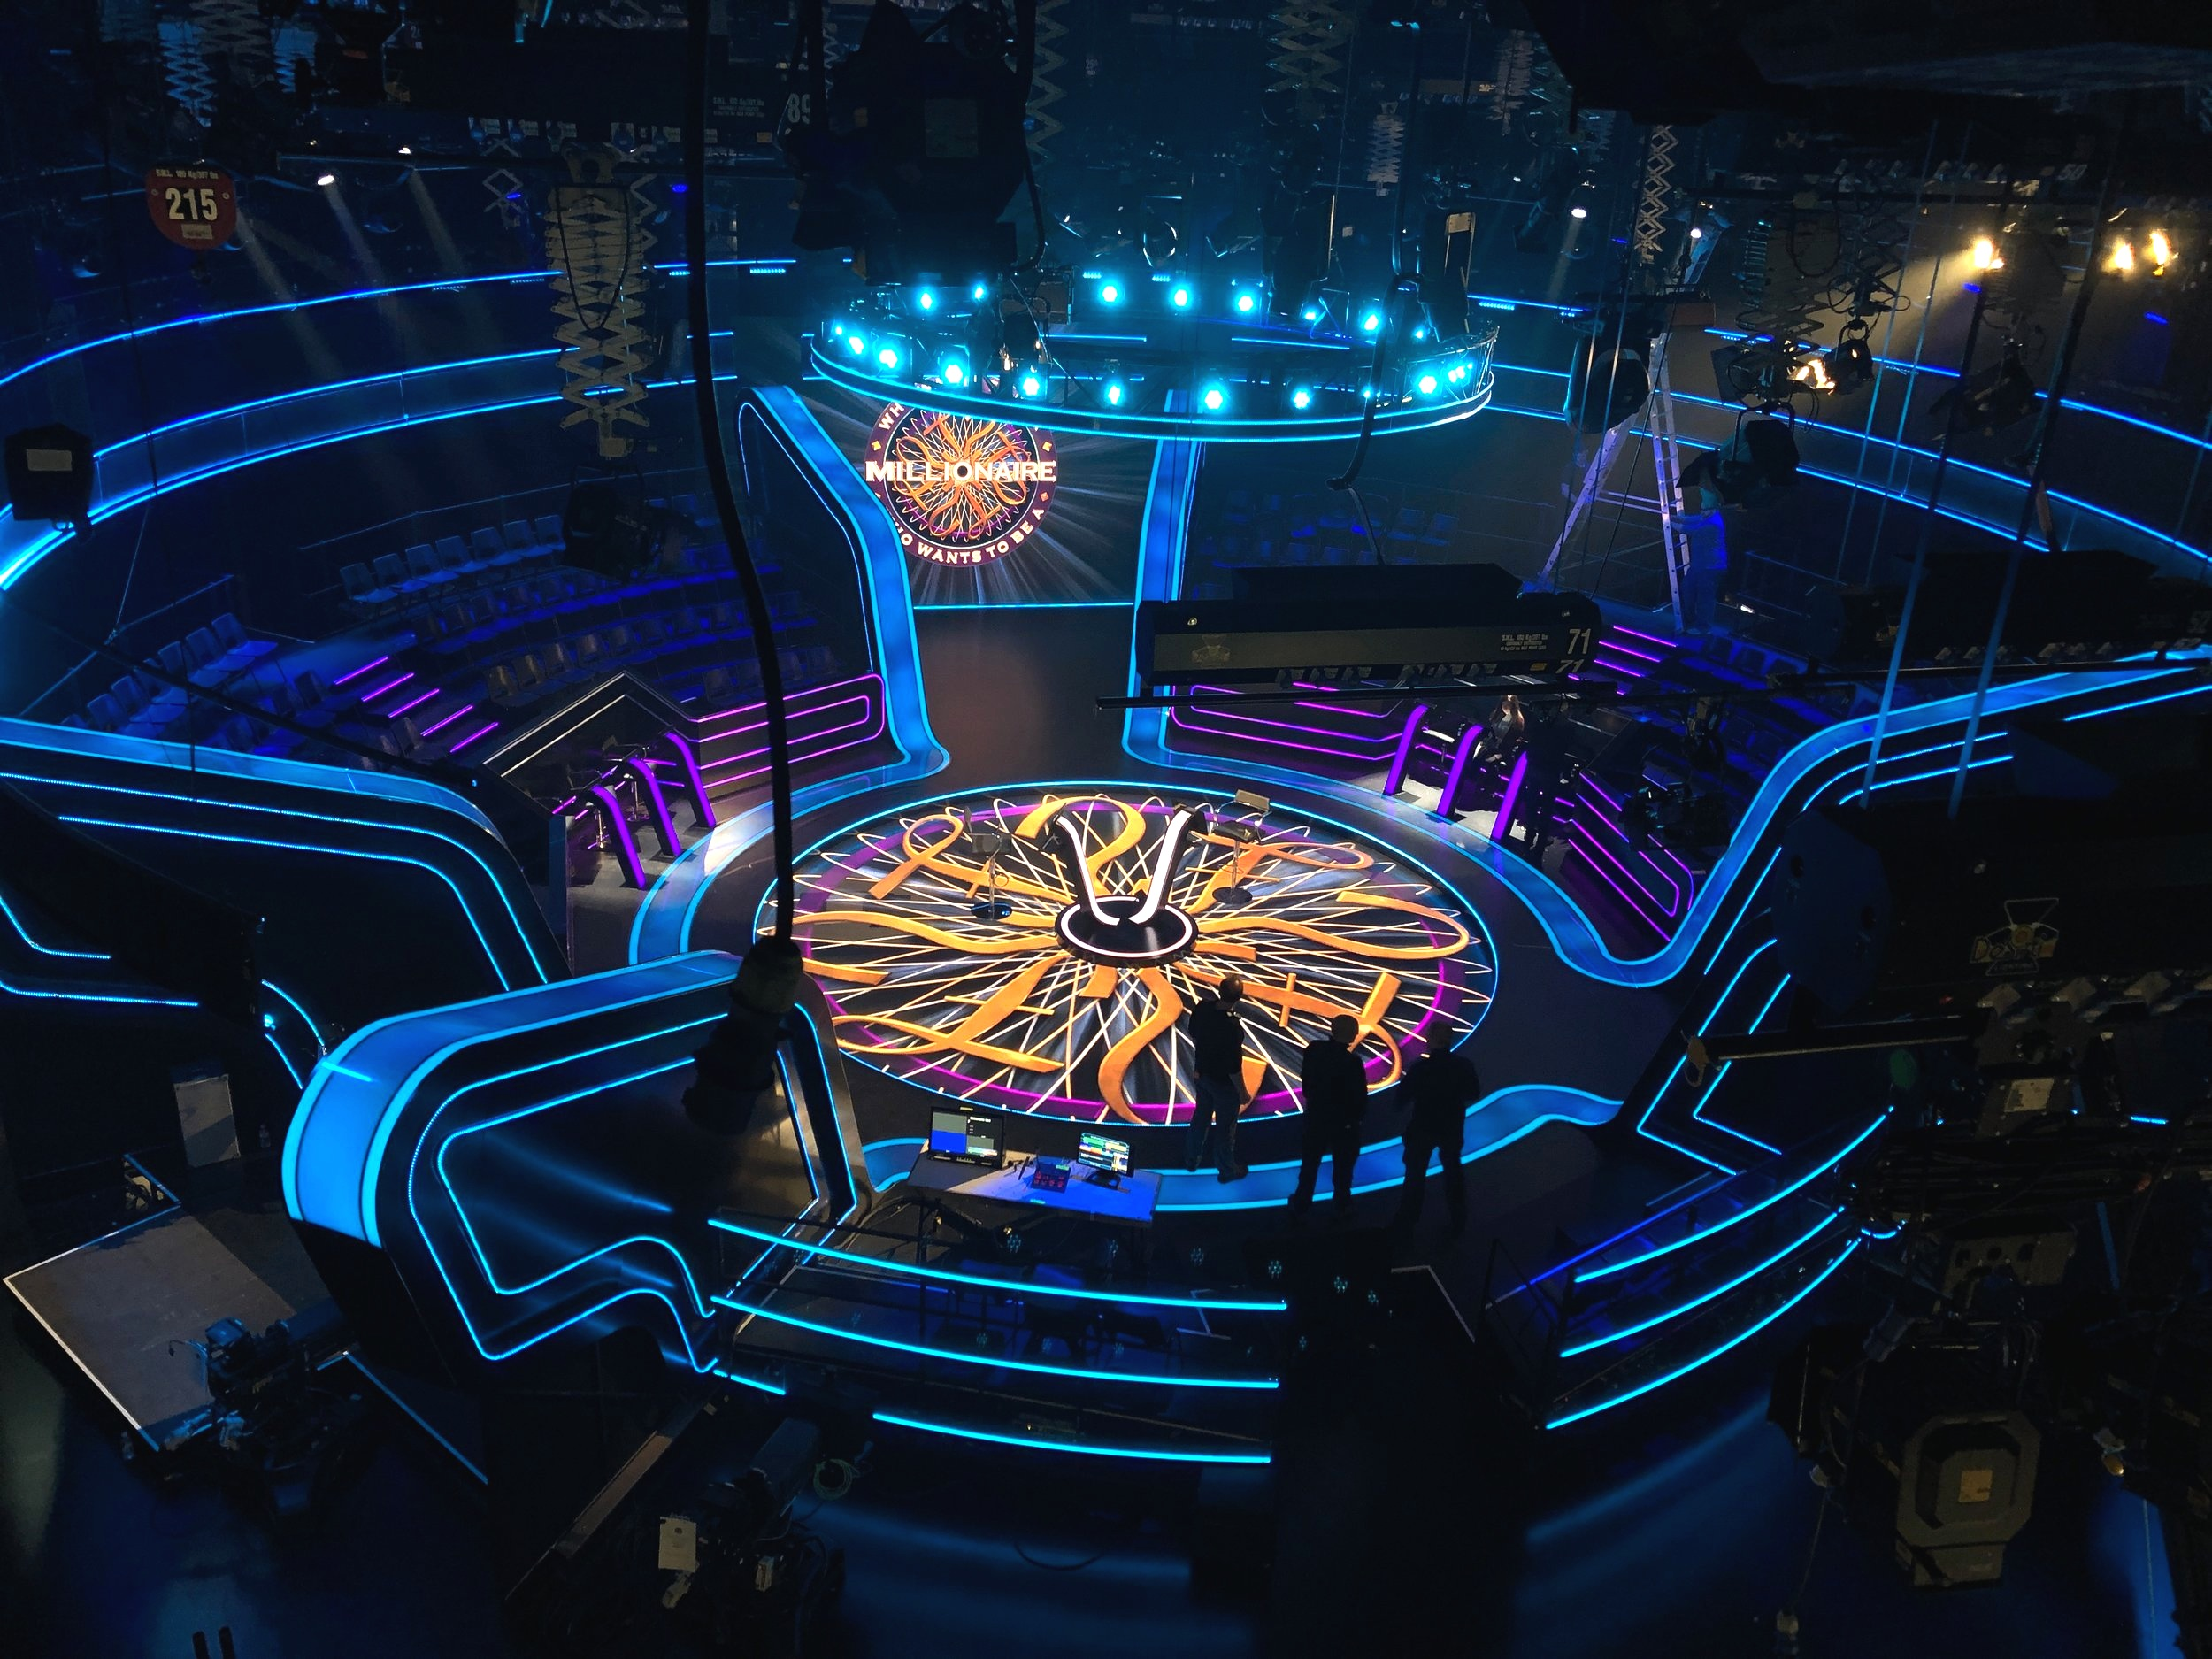 WHO WANTS TO BE A MILLIONAIRE   LED installation / set design: Patrick Doherty, lighting design: Dave Davey